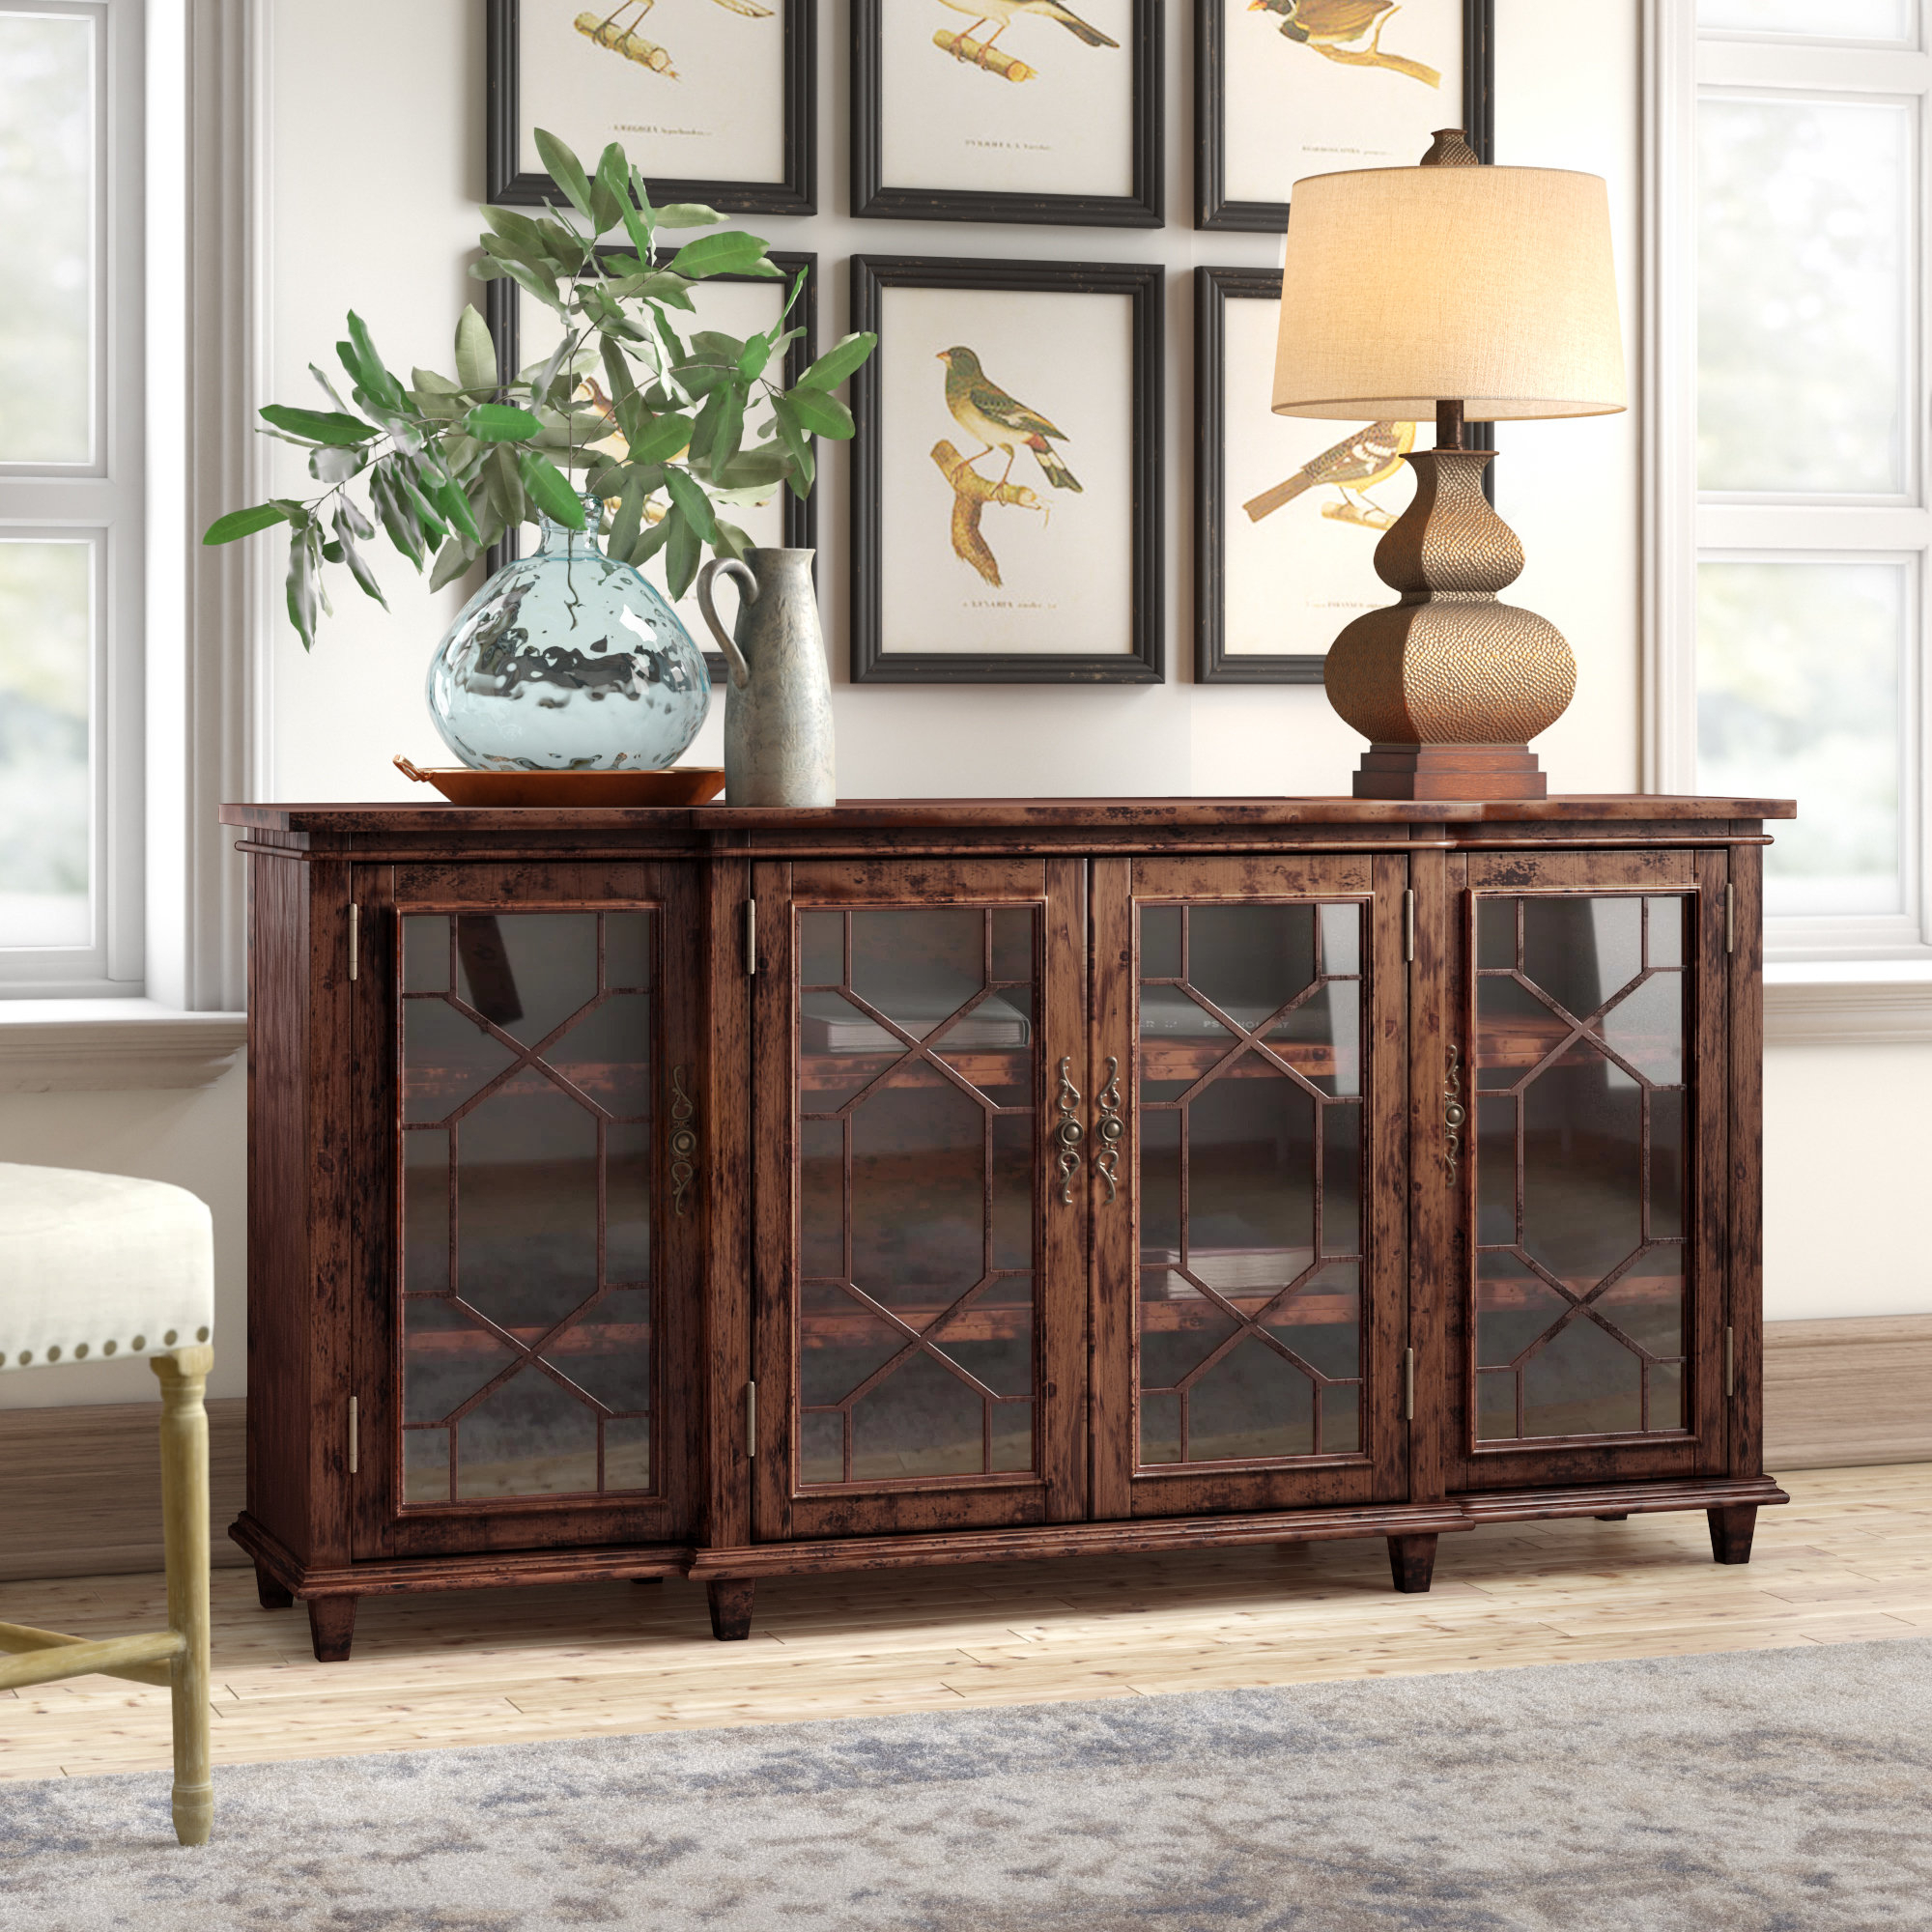 Inspiration about Quincy Sideboard Intended For Most Up To Date Kronburgh Sideboards (#7 of 20)